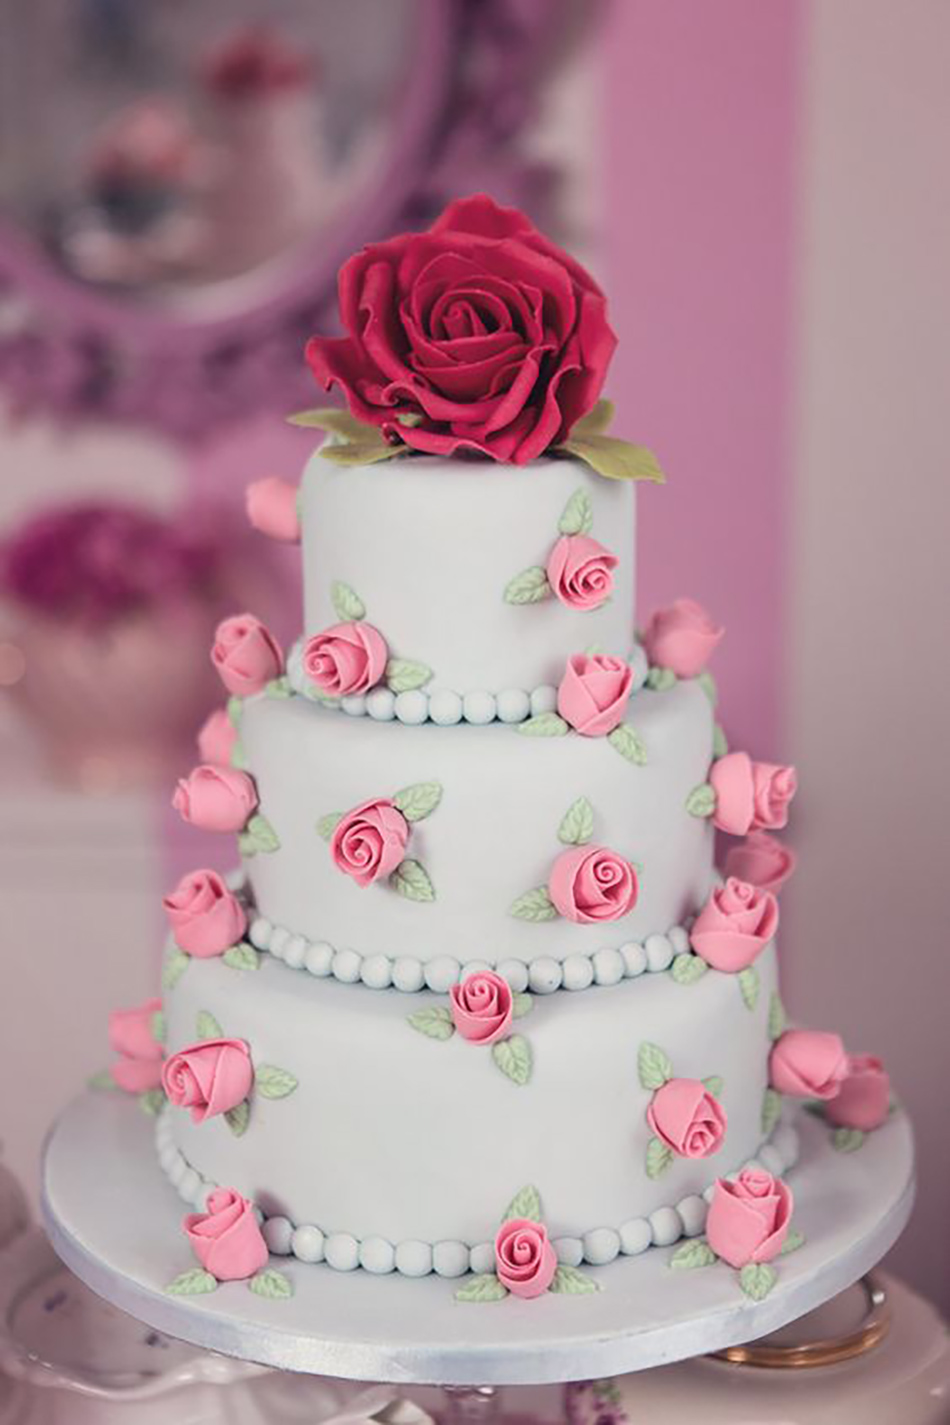 Wedding ideas by colour: pink wedding cakes